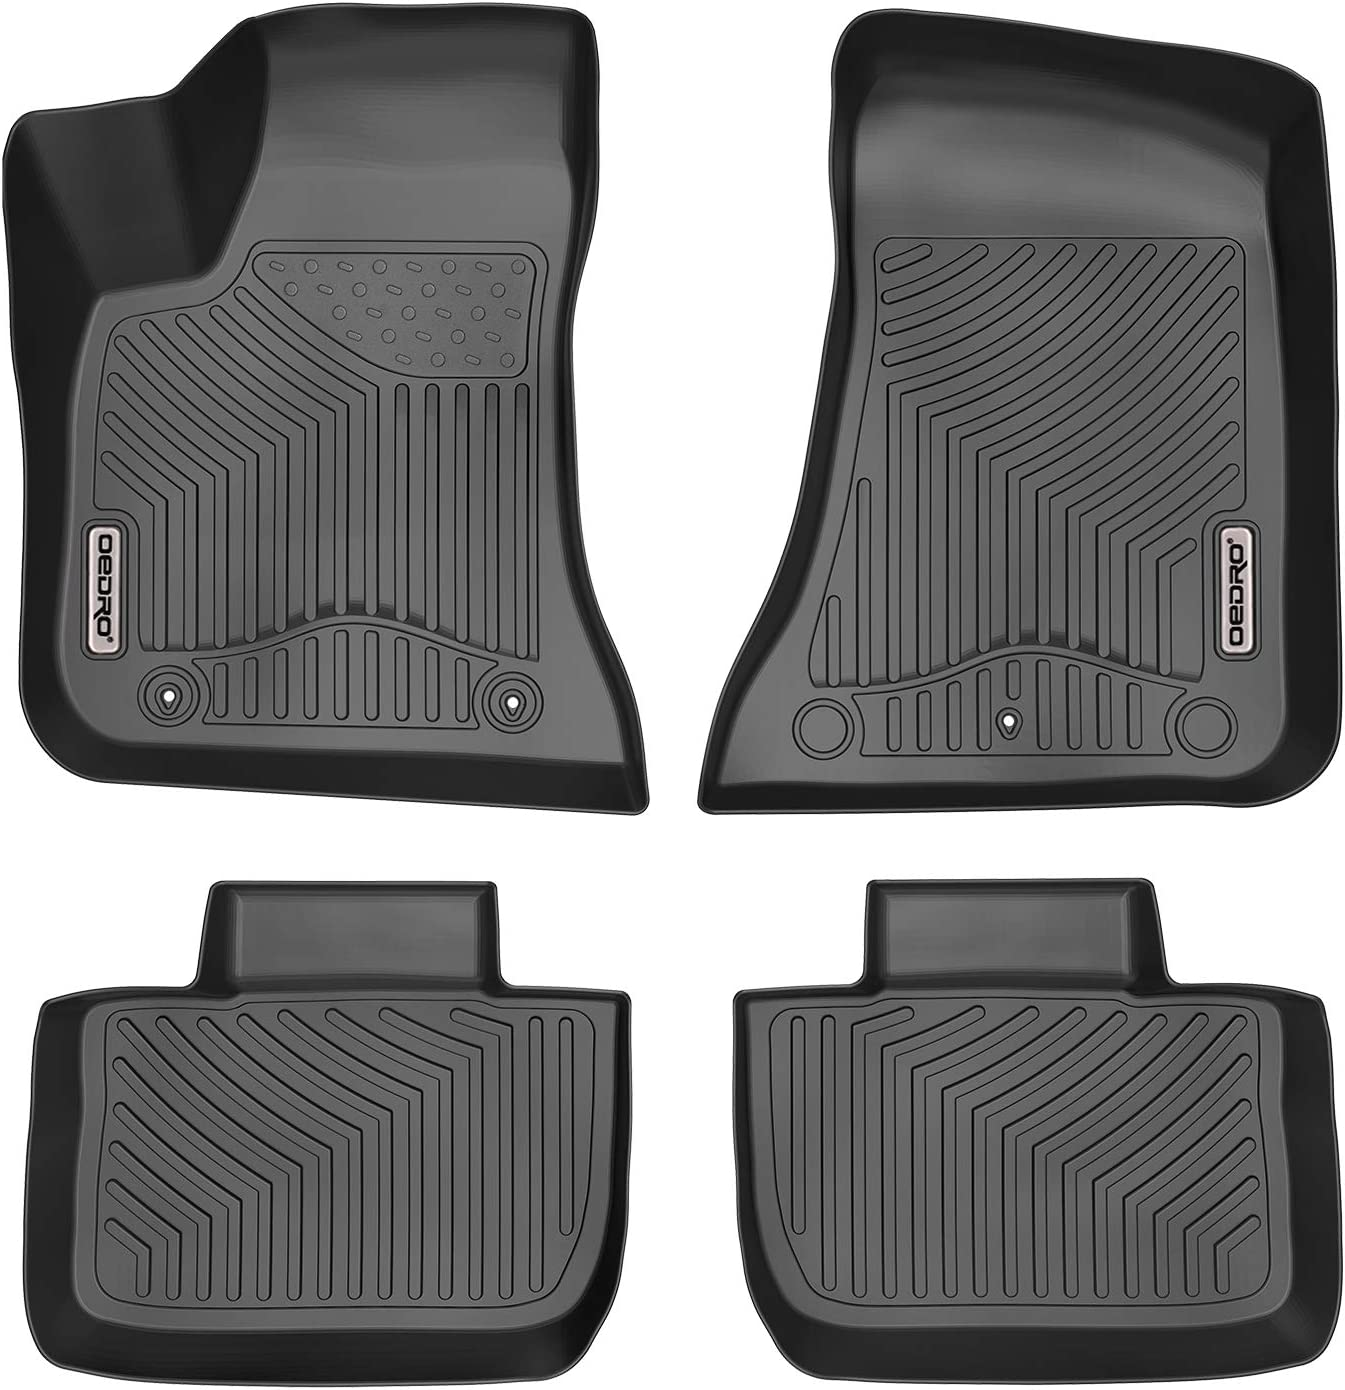 oEdRo Floor Mats for 2011-2019 Dodge Charger/Chrysler 300 RWD, Black TPE All Weather Front & 2nd Seat Custom Fit Liners